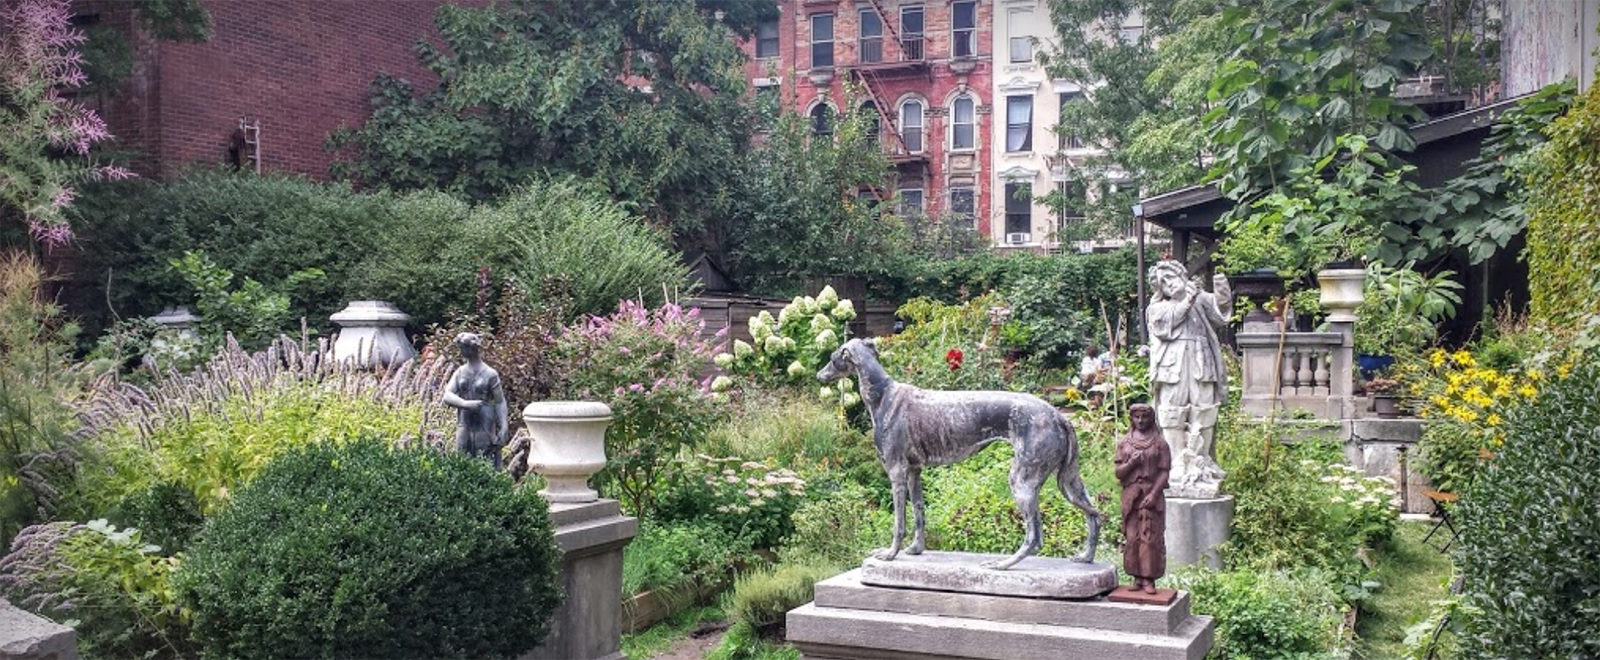 New York Spring Gardens Downtown Elizabeth Street Garden Gramercy Park Washington Square Park